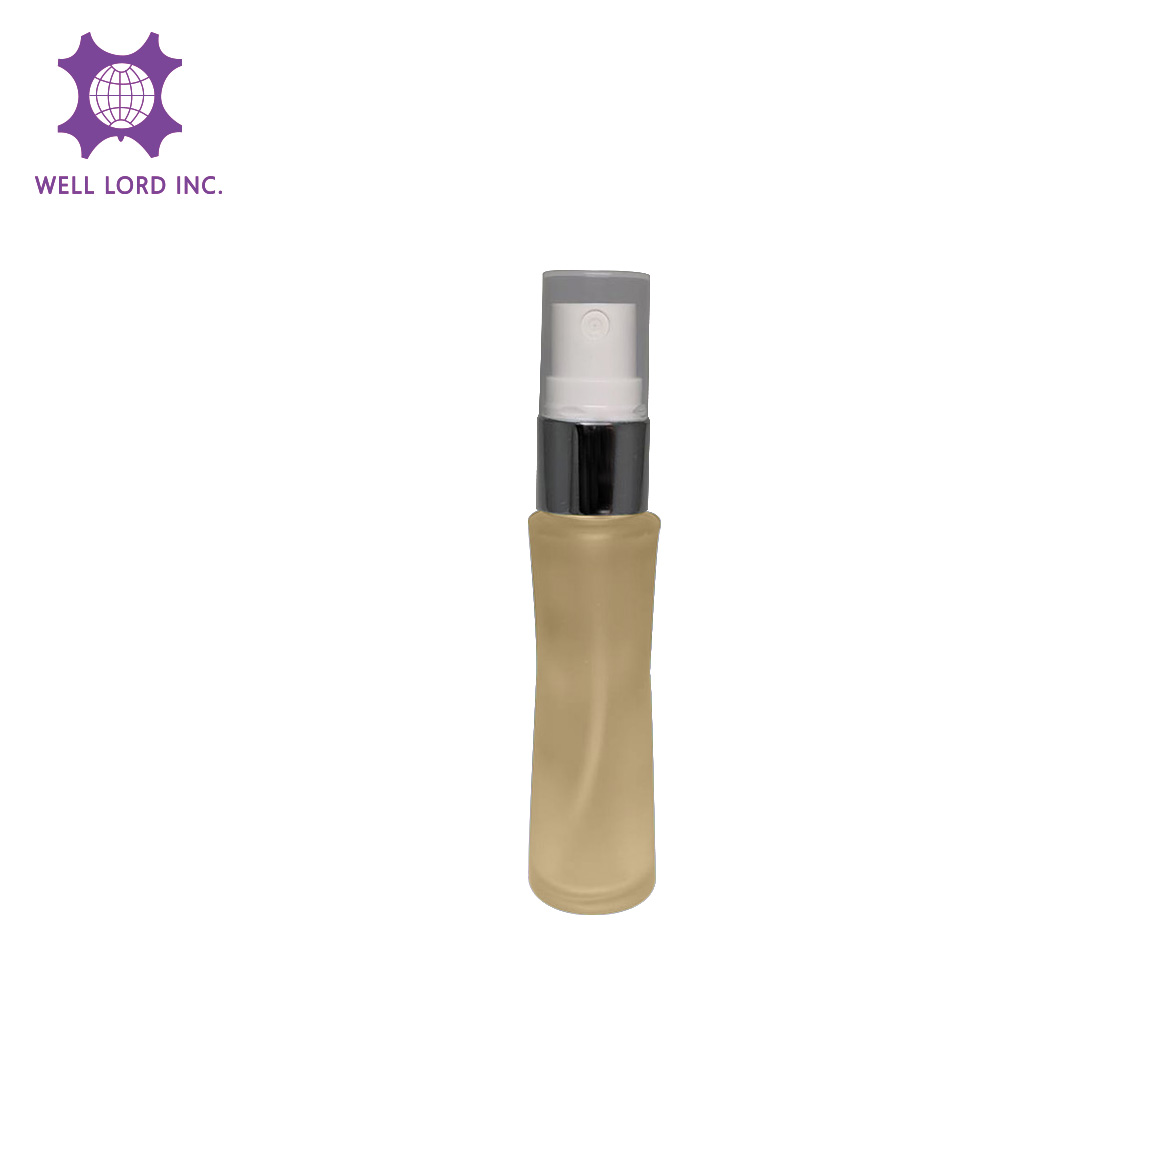 Mist moisture ultimate customized travel set bottle for personal care portable pump pressure spray bottle